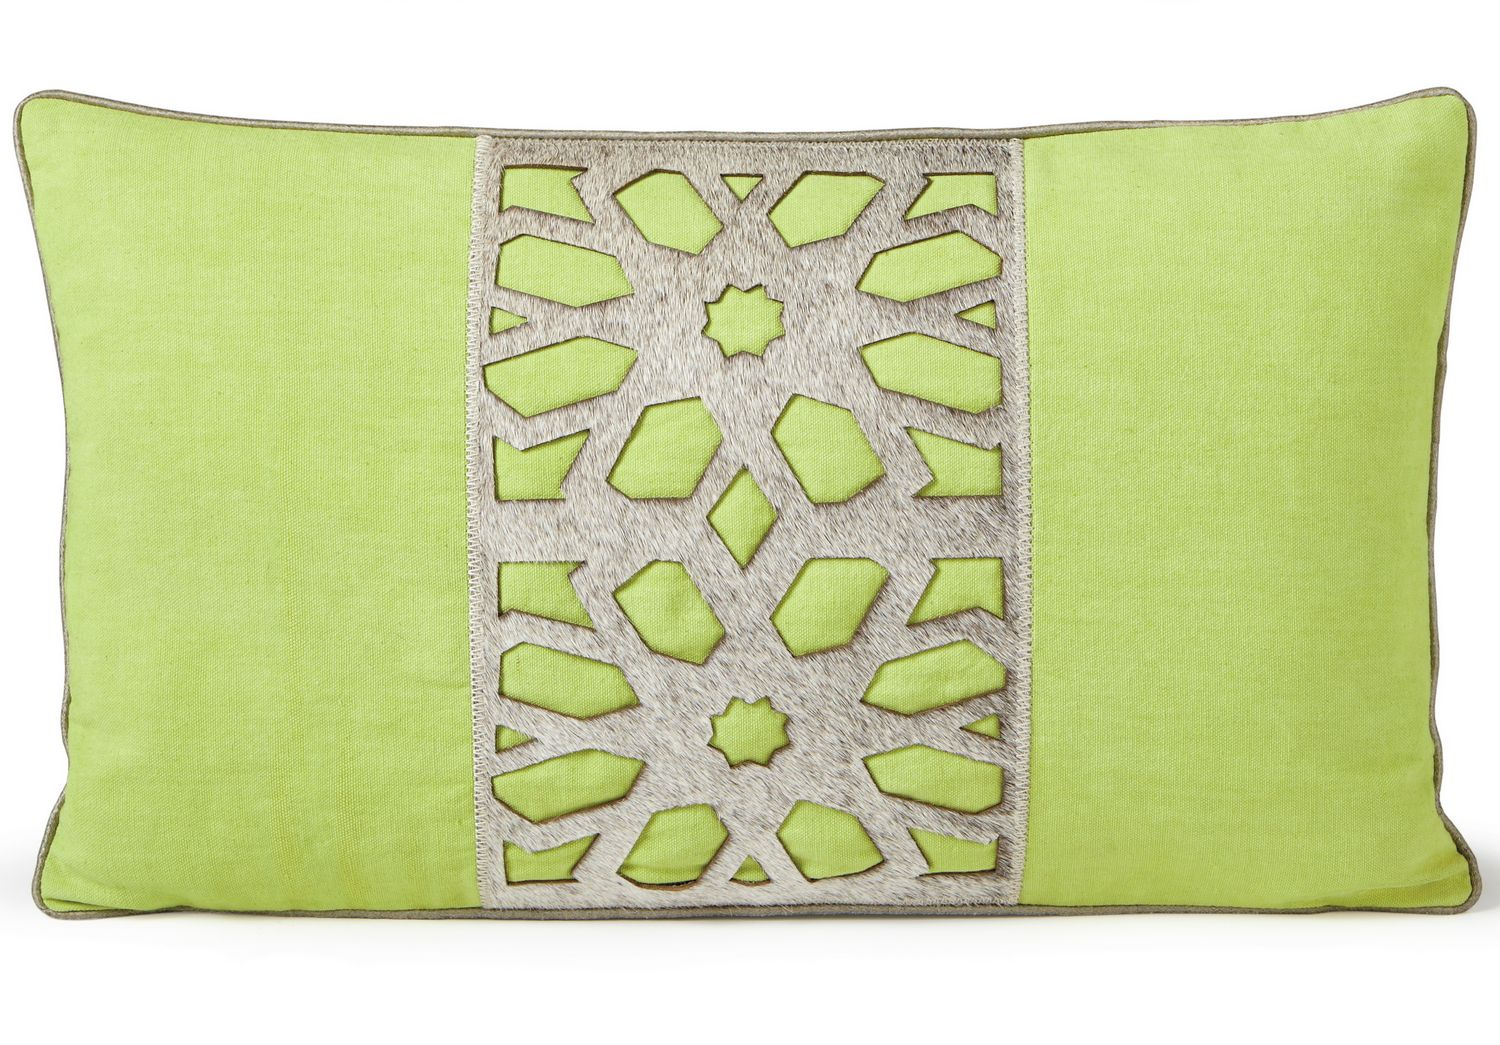 Uuu Fibre By Auskin Cowhide Flower Green Decorative Pillows